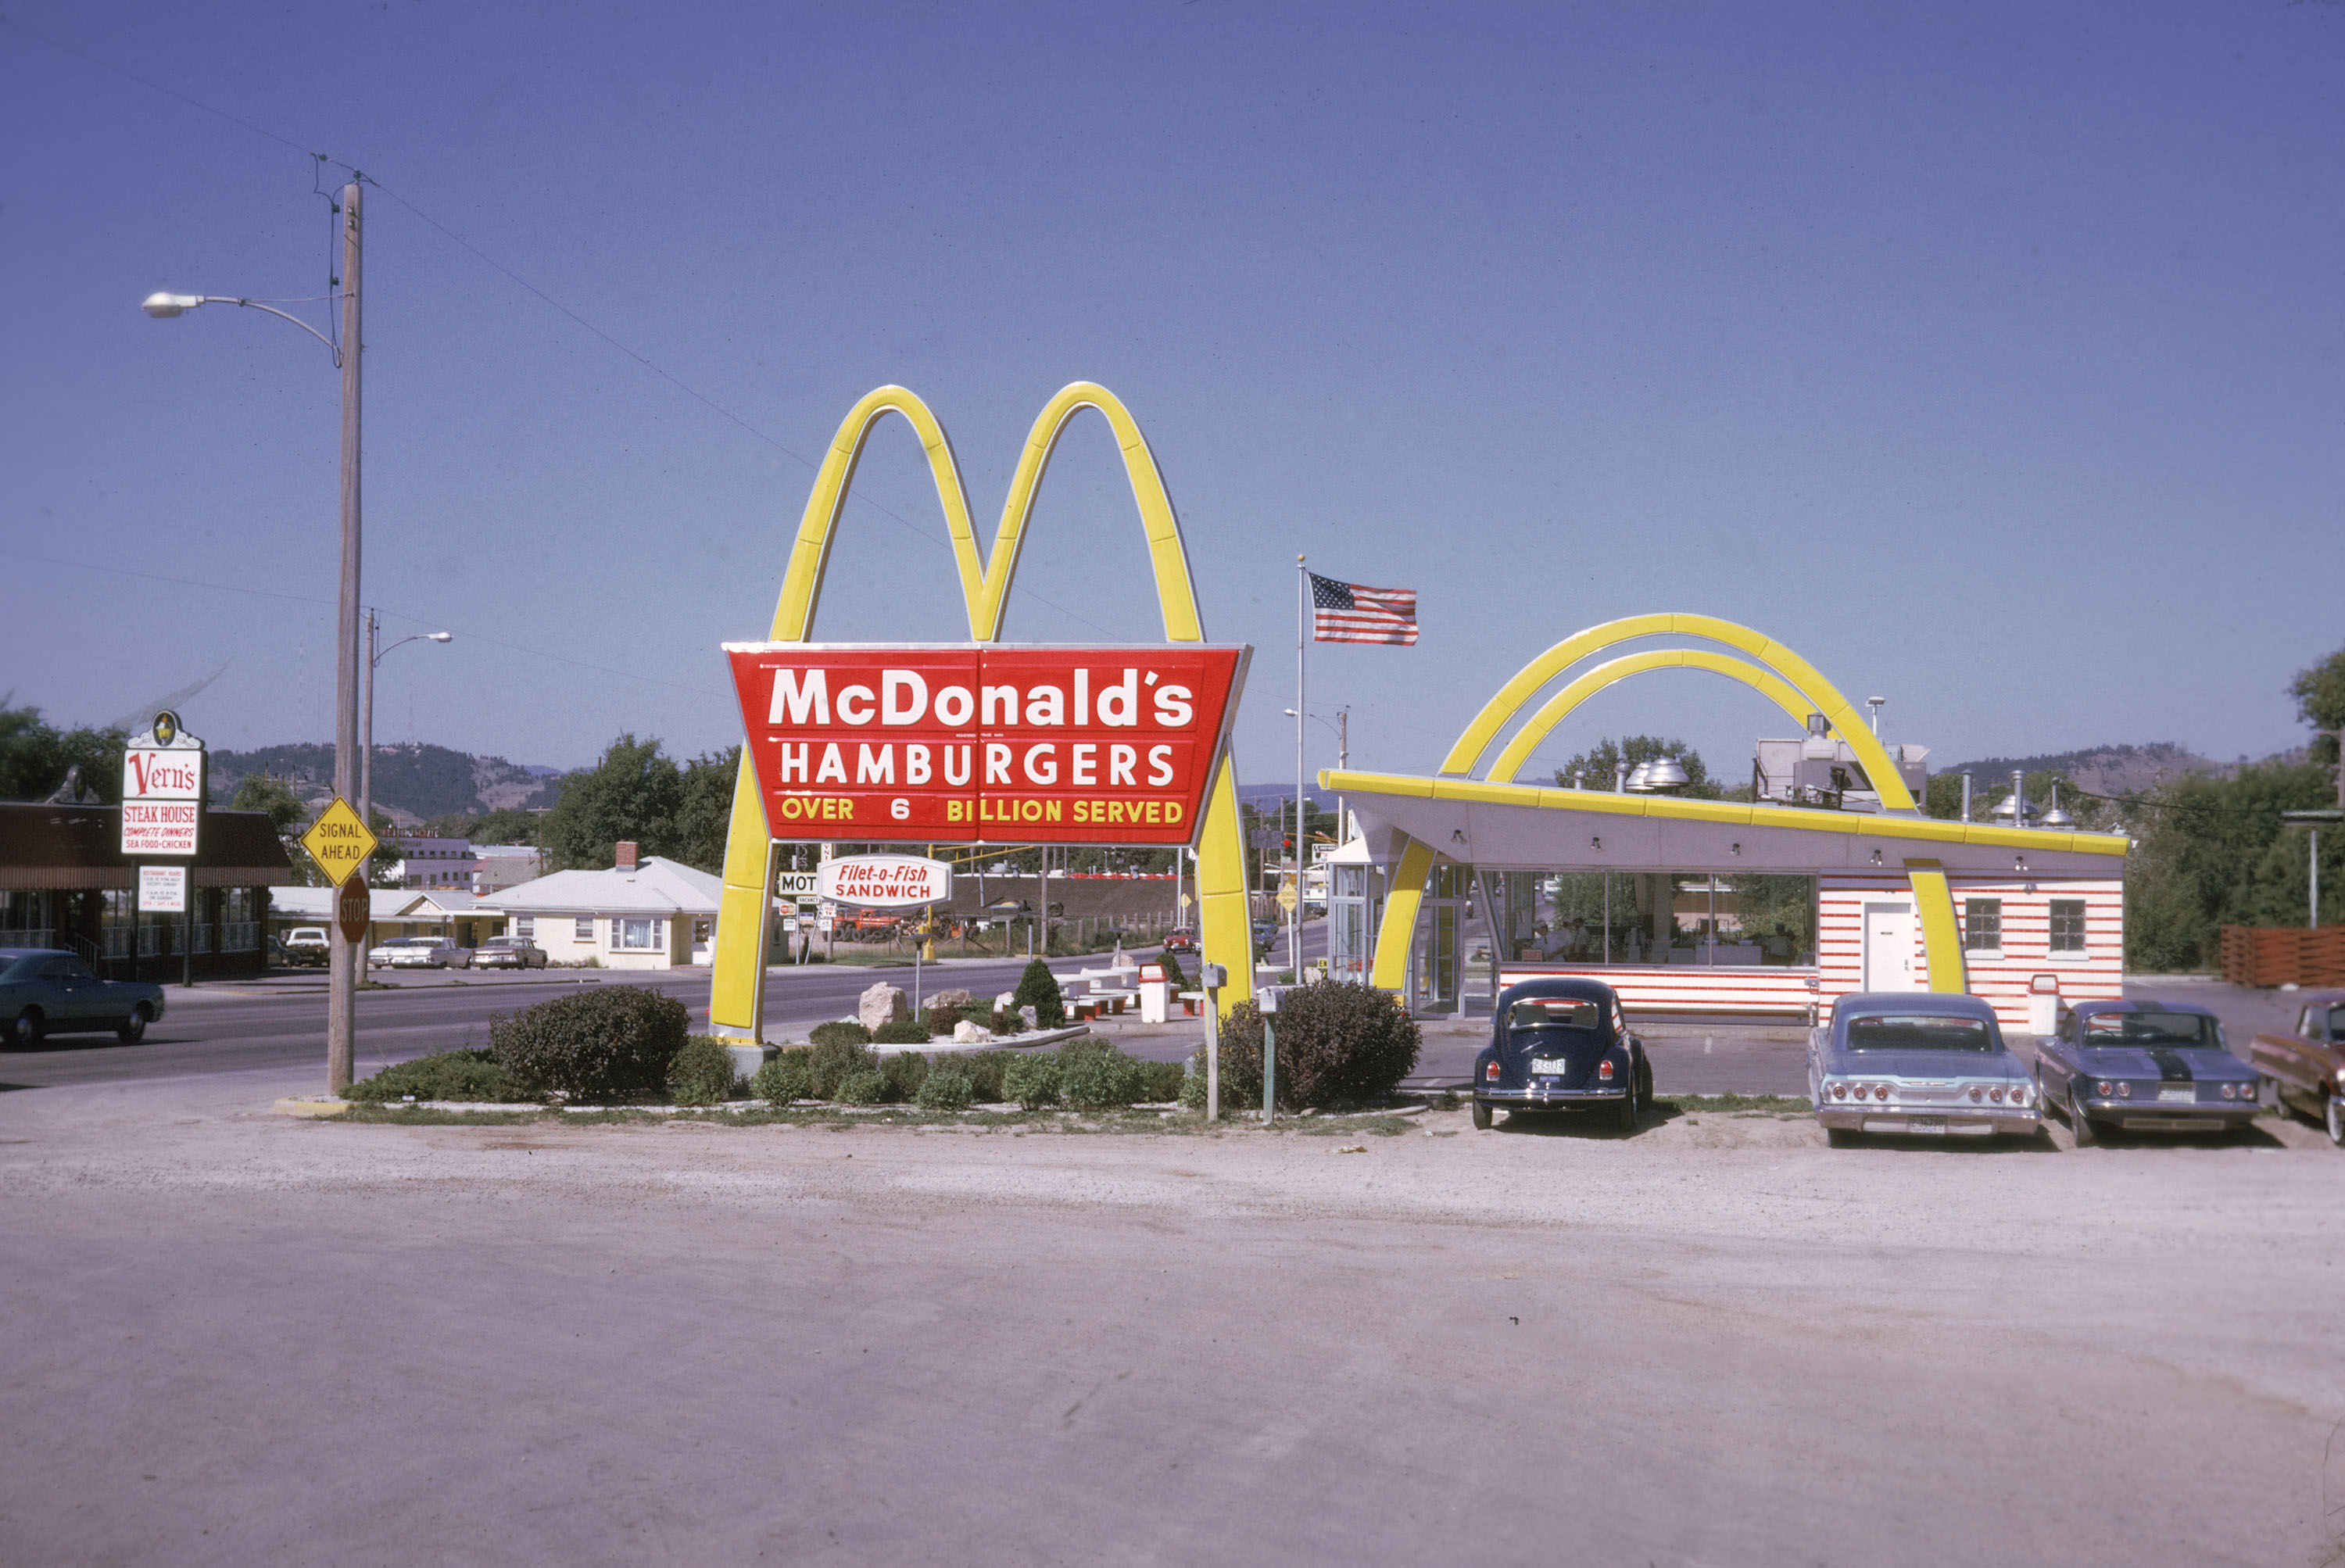 How a Sit-In Protest Helped End Segregation at McDonald's